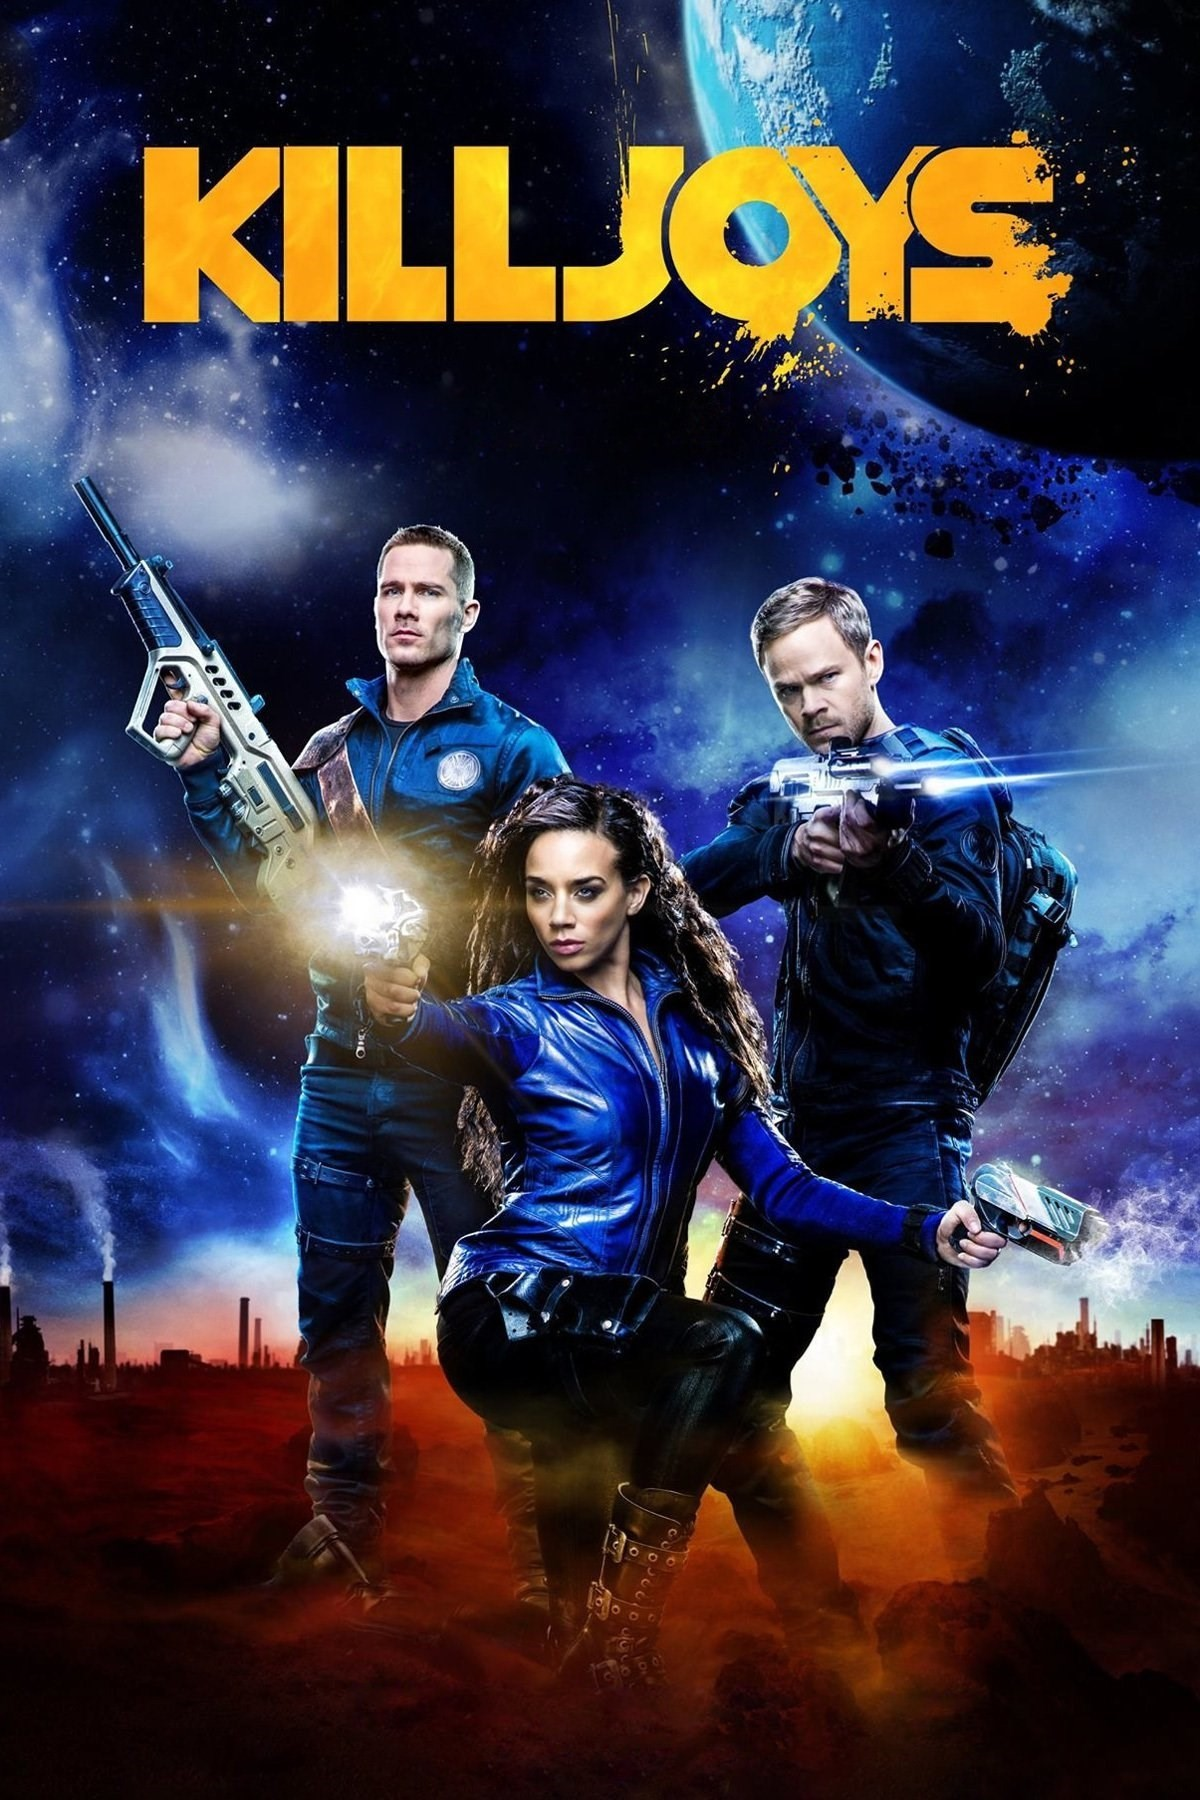 streaming-killjoys-syfy-online